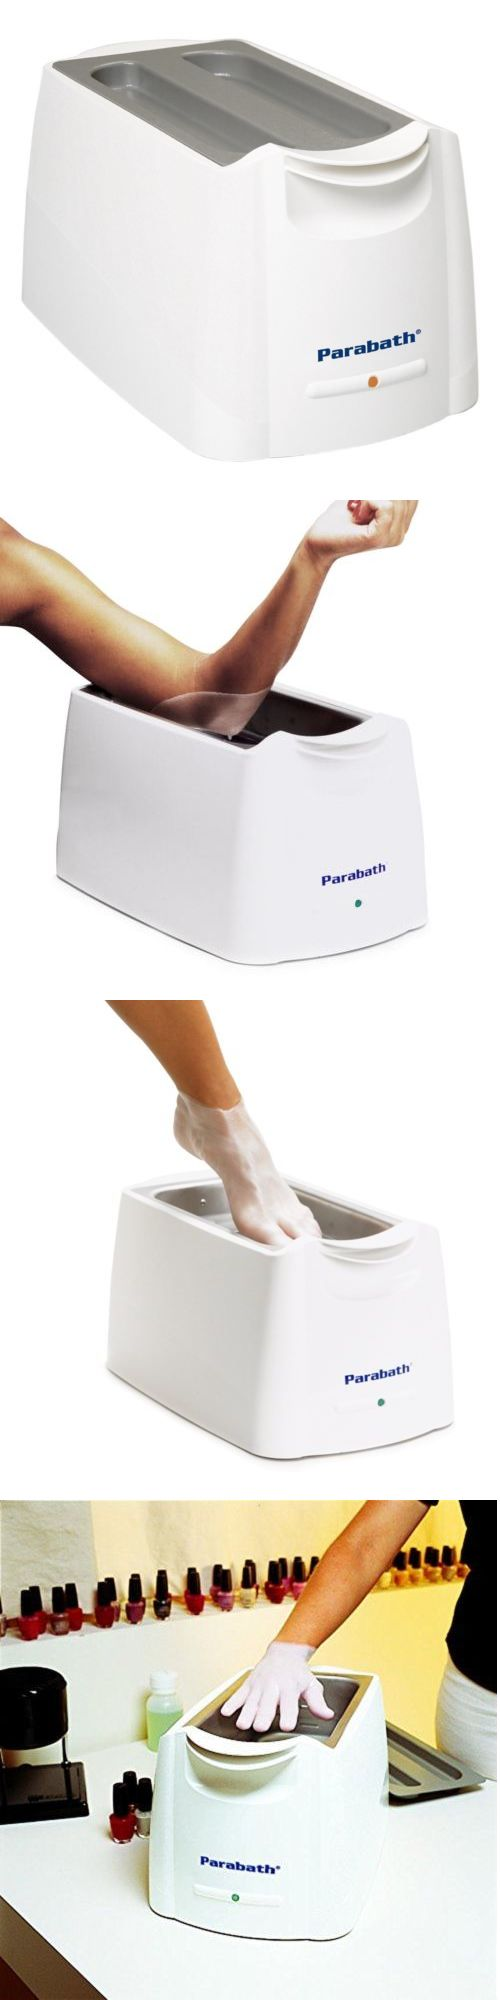 Spas Baths and Supplies: Parabath Paraffin Wax Heating Unit Paraffin Wax Treatment Bath For Heat Thera... -> BUY IT NOW ONLY: $197.56 on eBay!